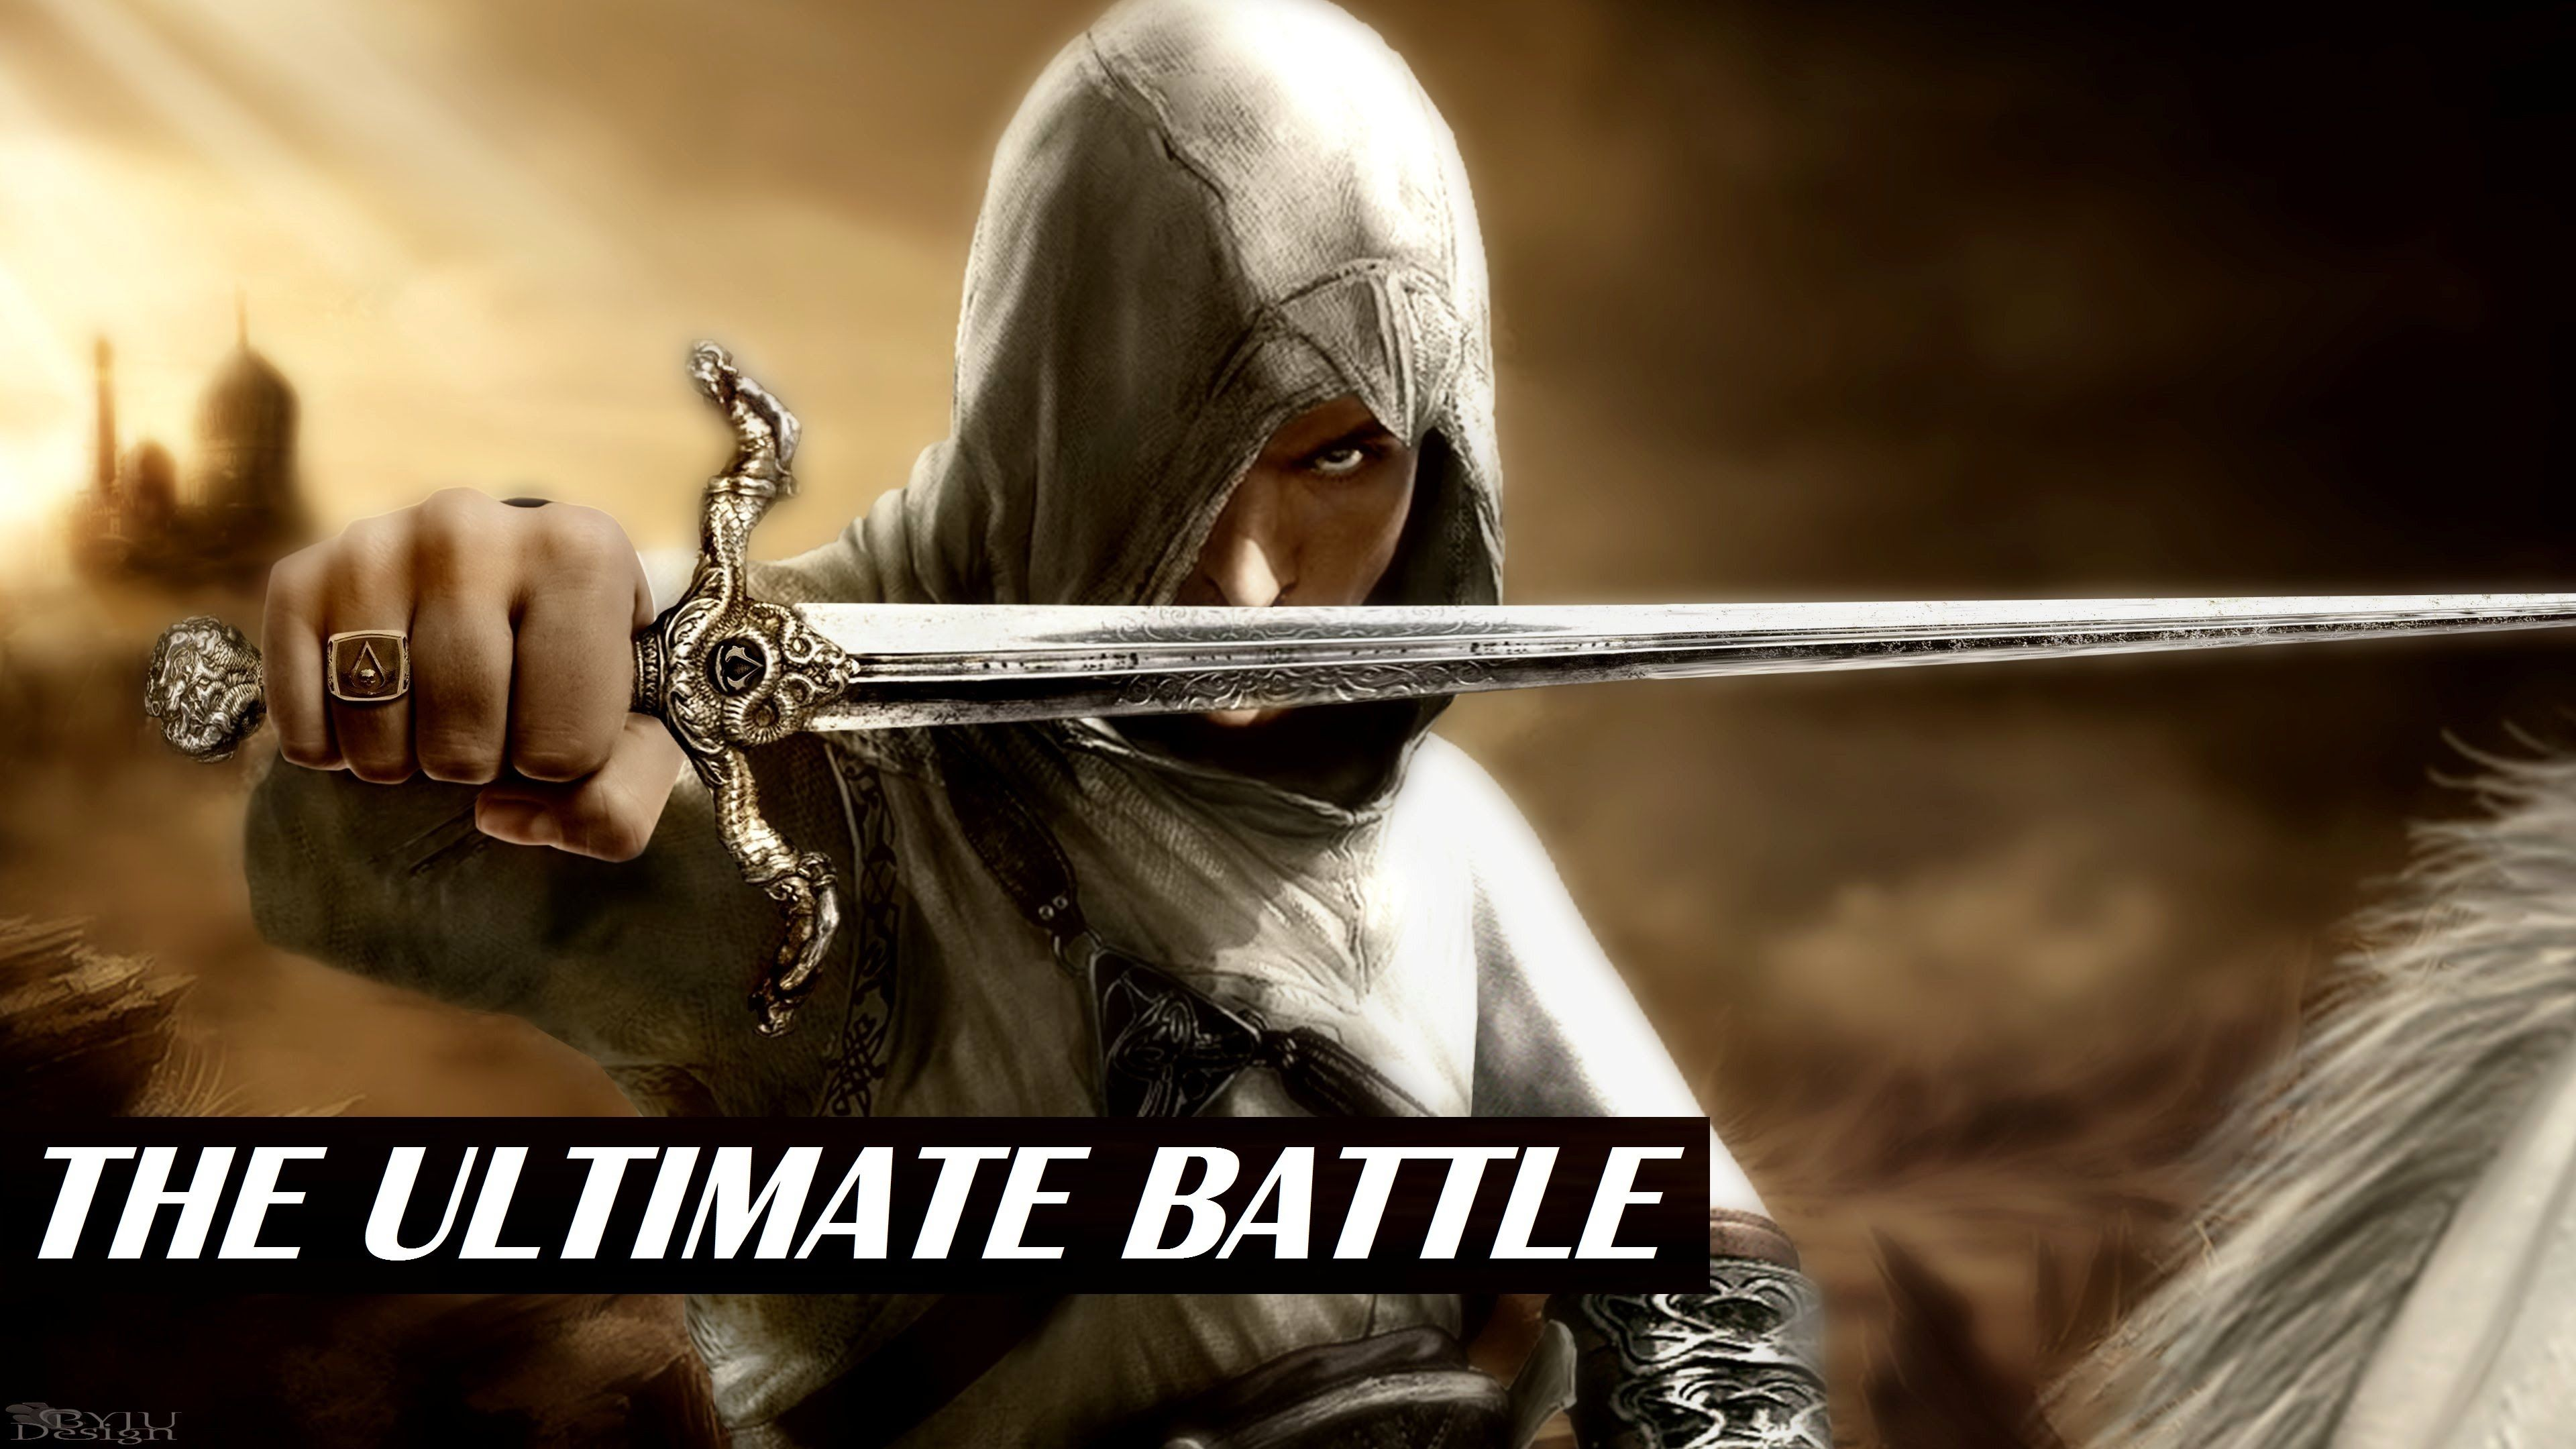 10 Years Of Assassin S Creed The Ultimate Battle Https Www Youtube Com Watch V Oatscmxlo 4